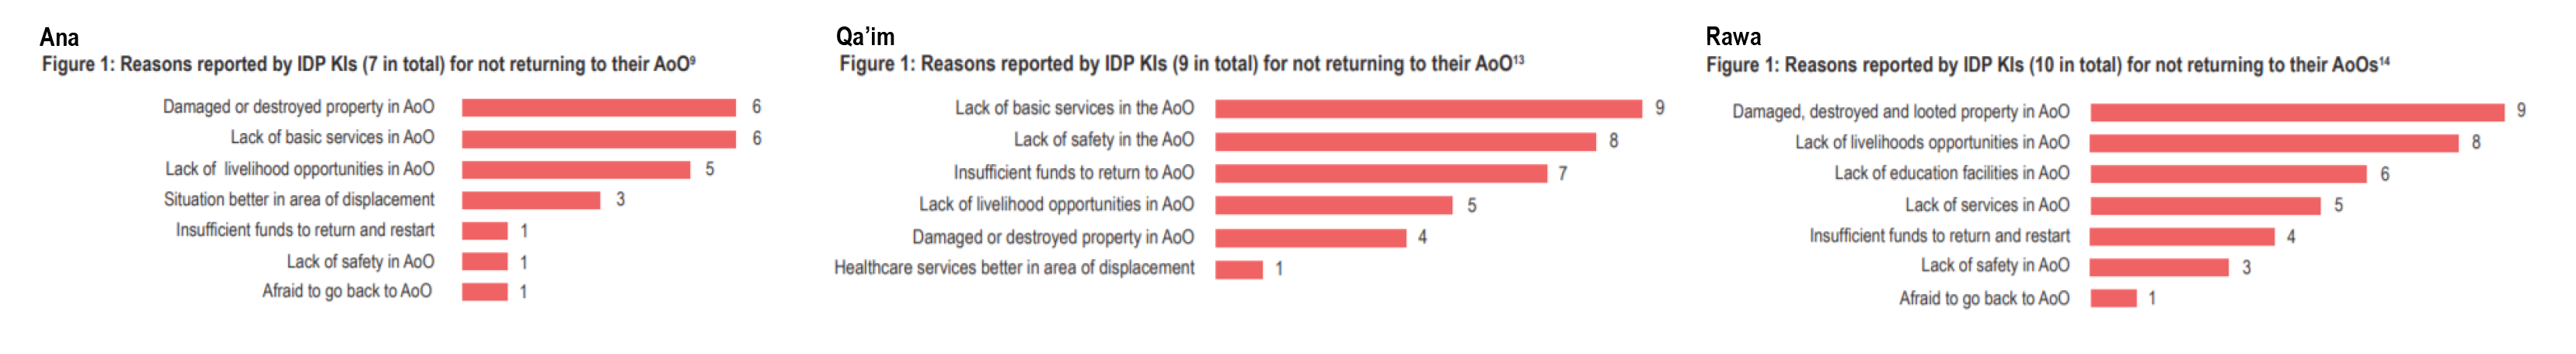 Reasons given by internally displaced people or IDPs from Ana, Qa'im and Rawa for not returning to their area of origin.